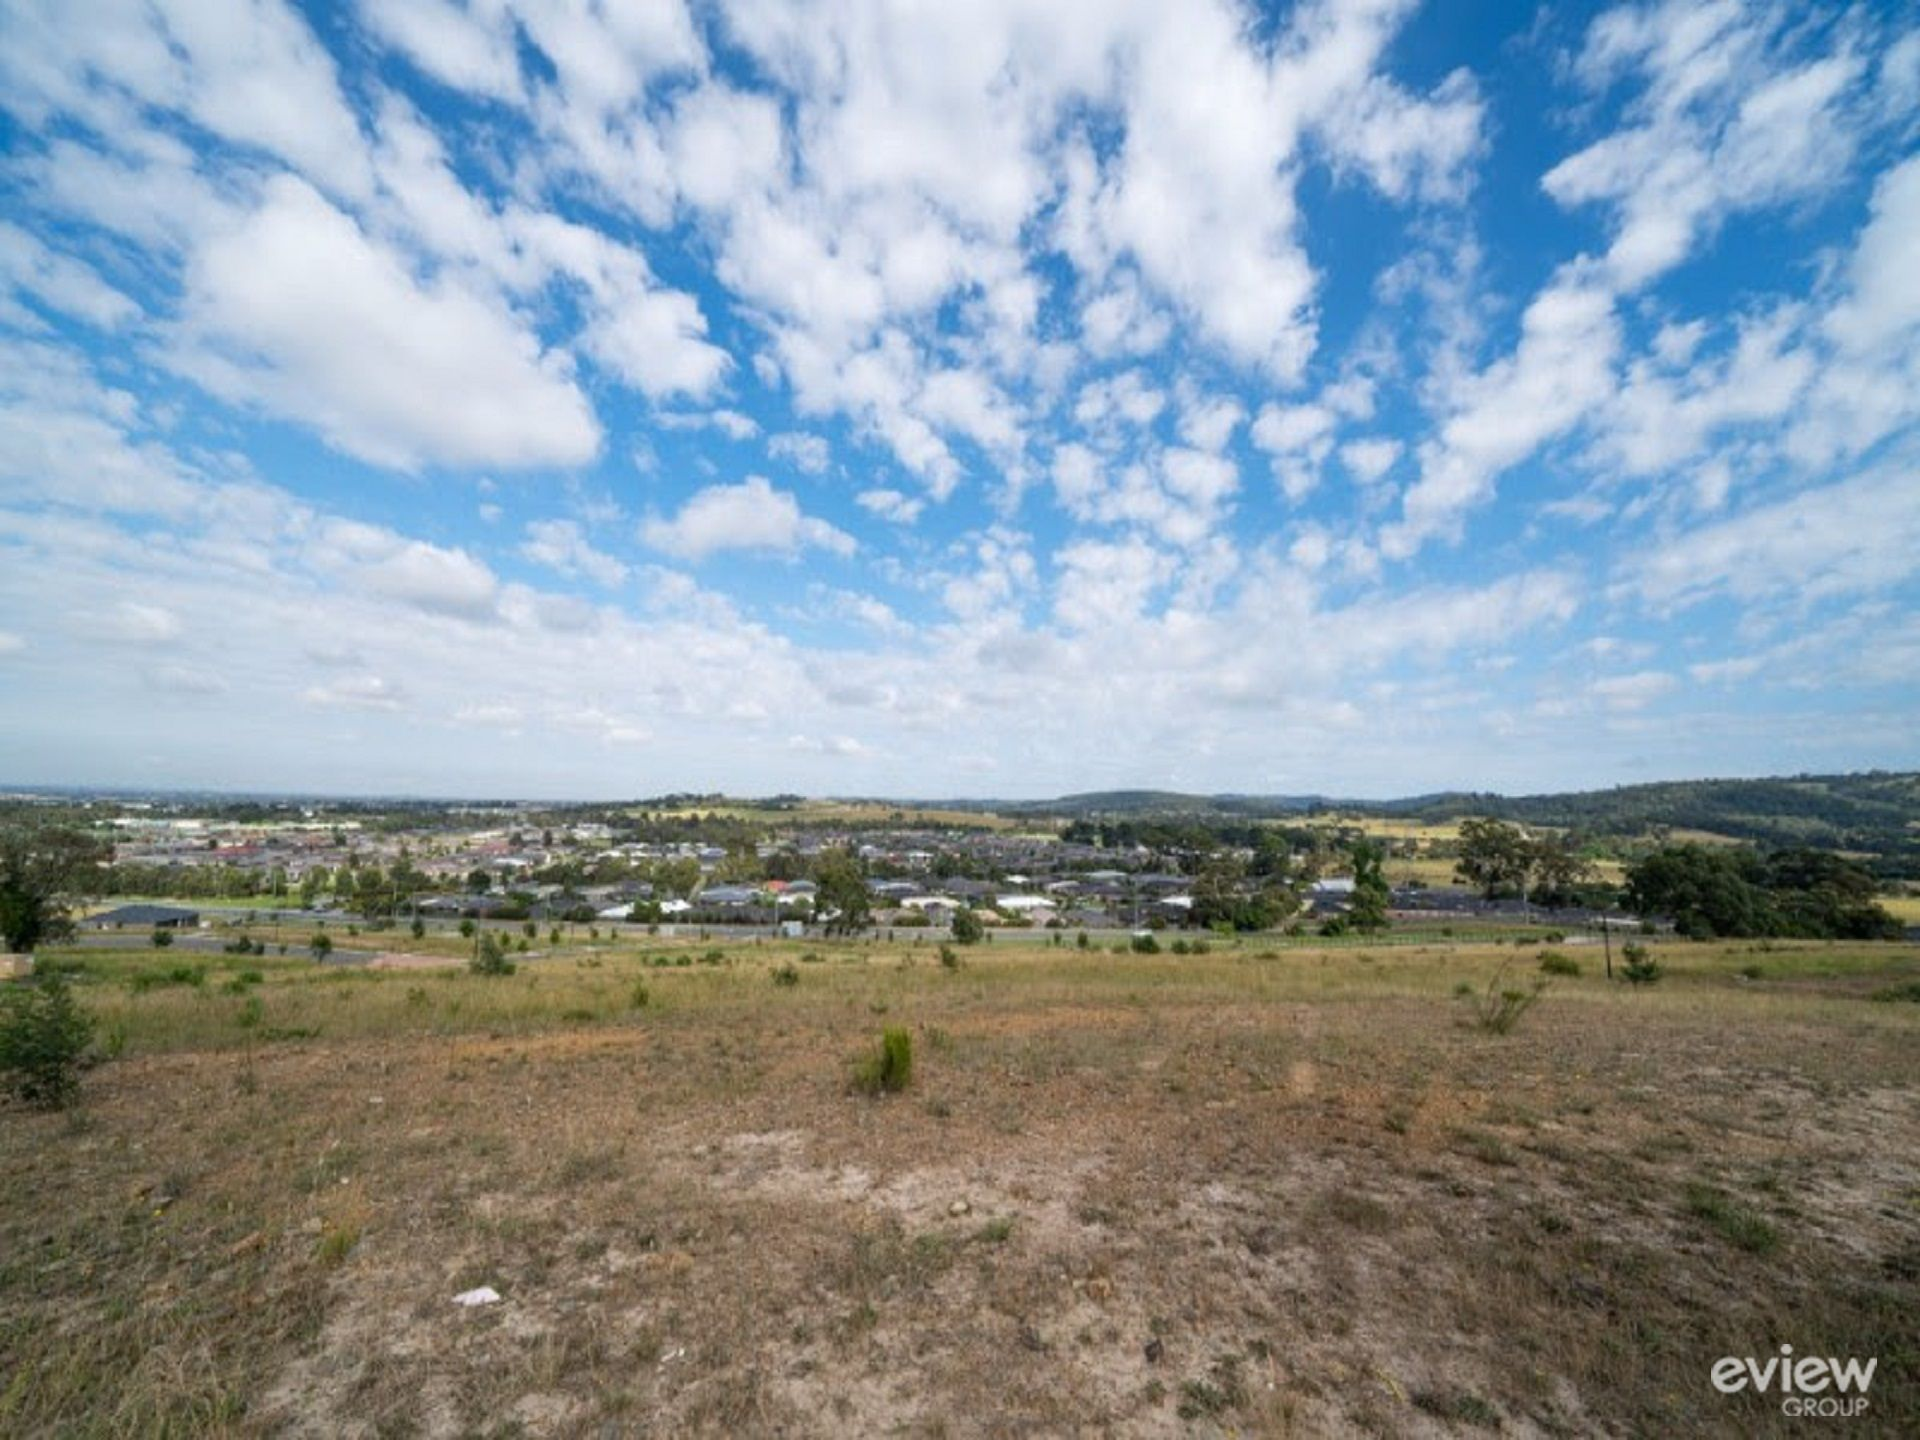 Lot 219/120 Pakenham Road, PAKENHAM, VIC, 3810 - Image